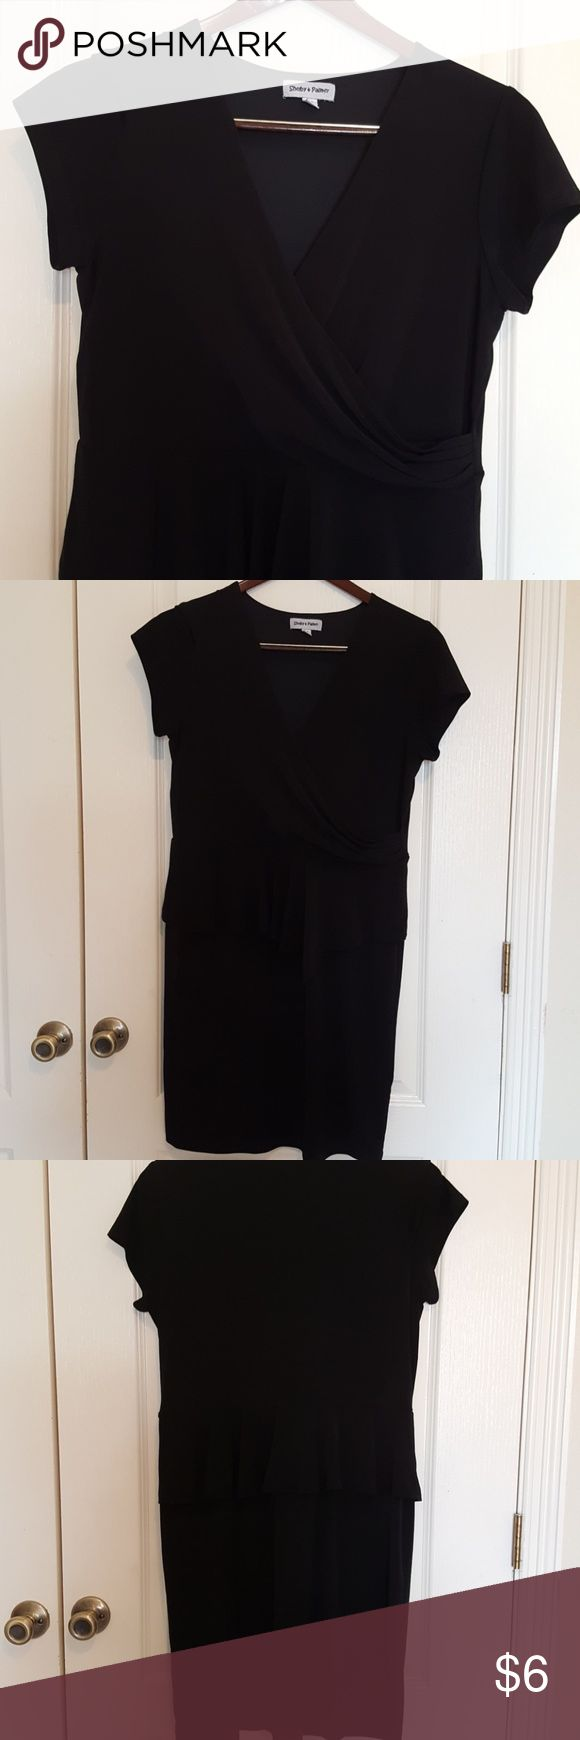 """Black peplum dress This is a versatile style that is very flaterring. It crosses on the chest and has a peplum flounce all around. In good condition. It is 38 1/2"""" long and has 18"""" waist. It would look better on a bustier woman, which I am not. shelby & palmer Dresses Midi"""